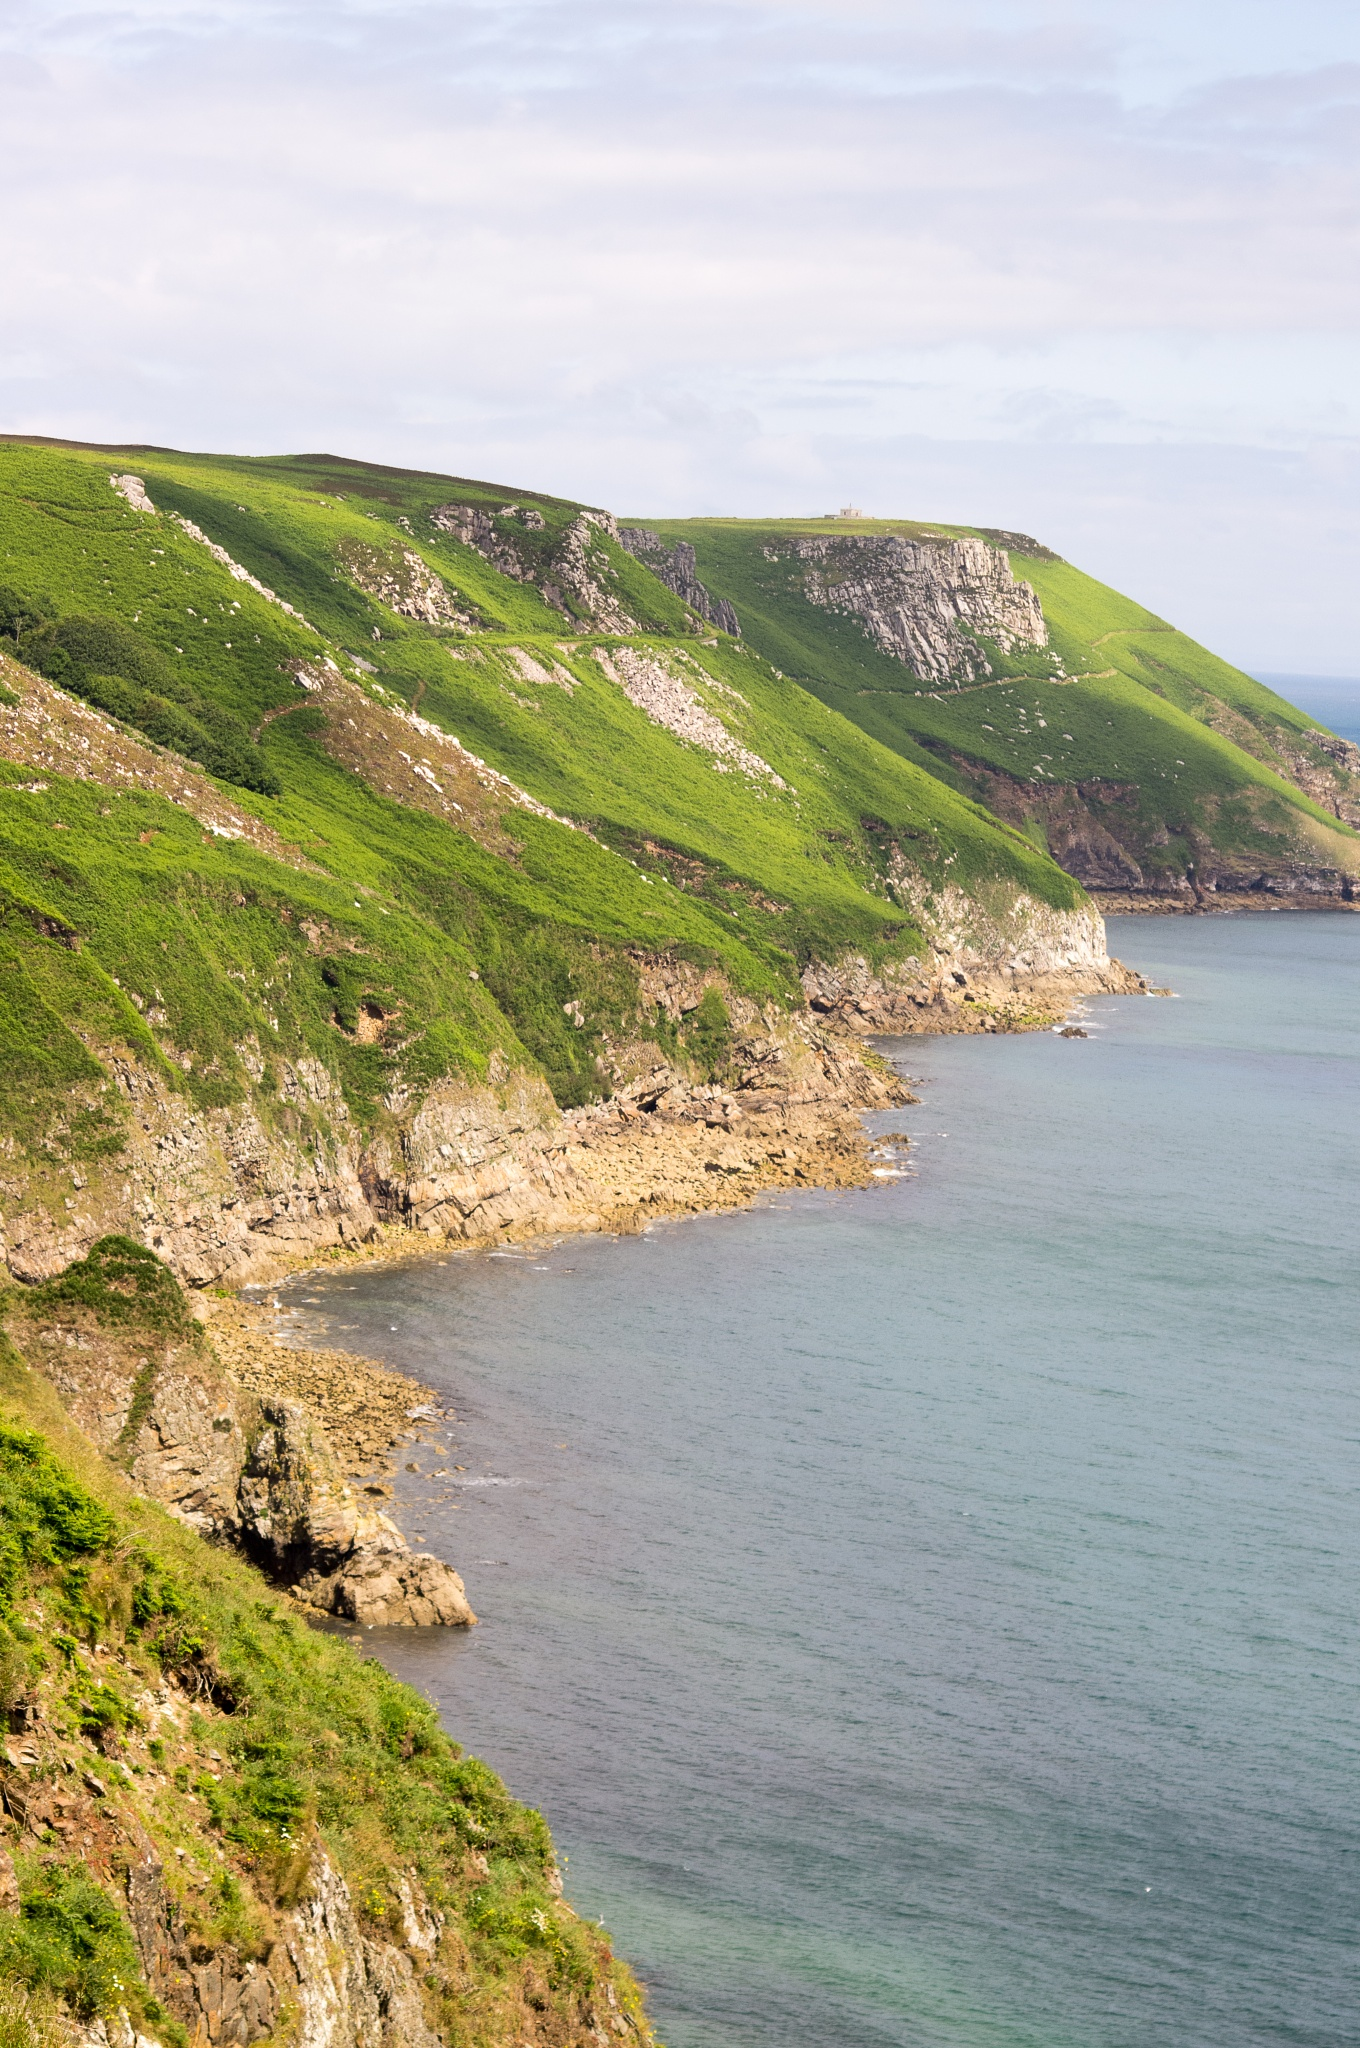 Lundy east coast cliffs by tom salt